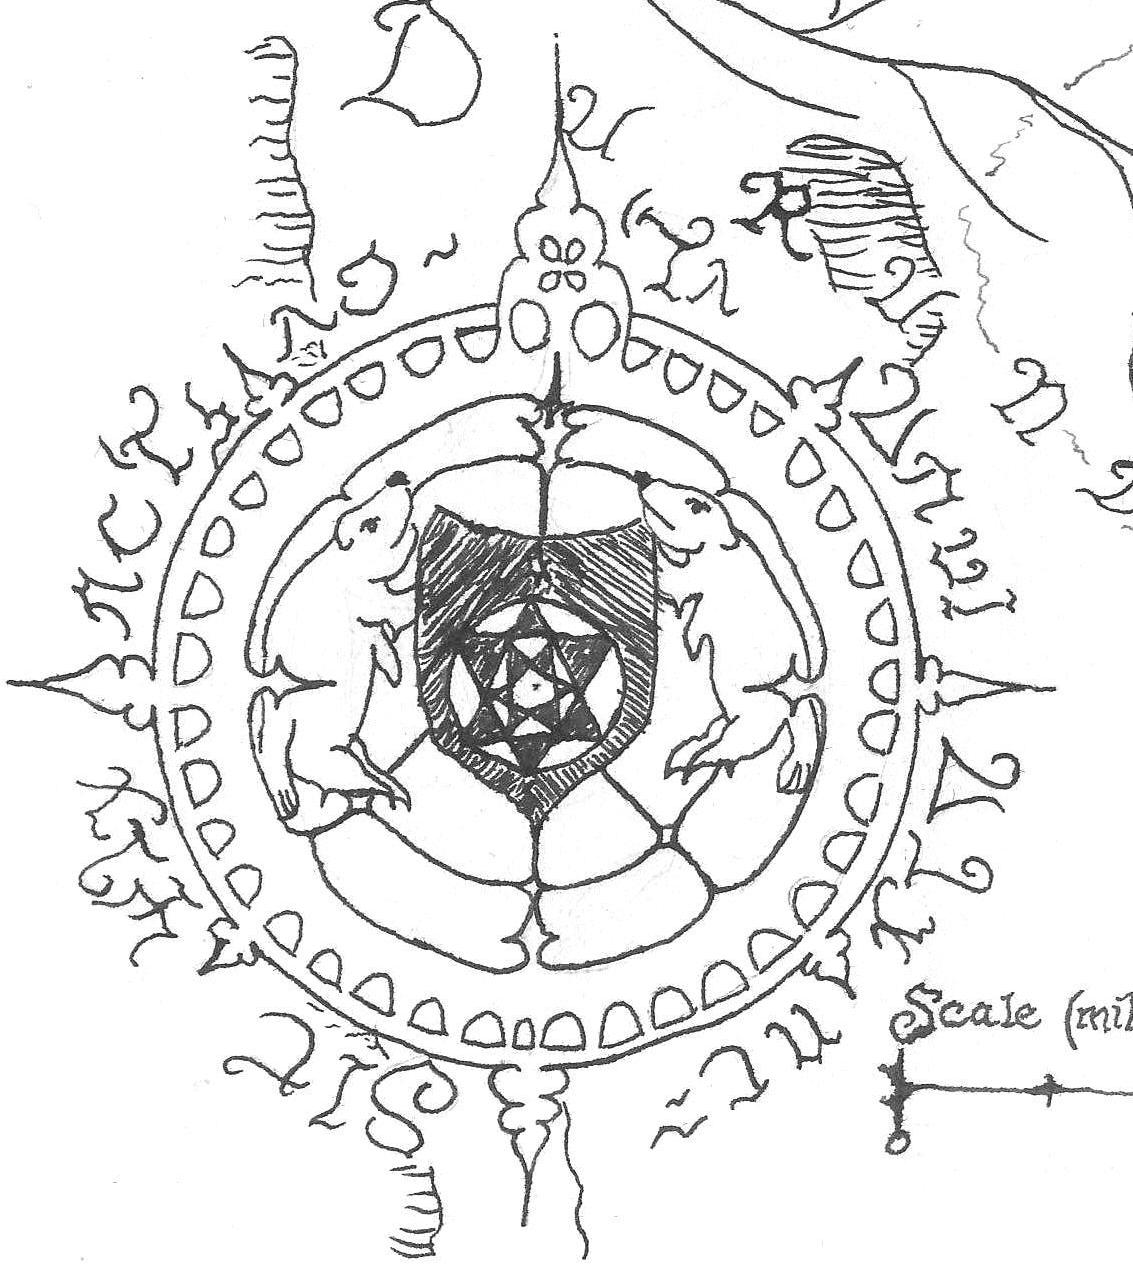 The compass rose I use as my avatar on the forums.